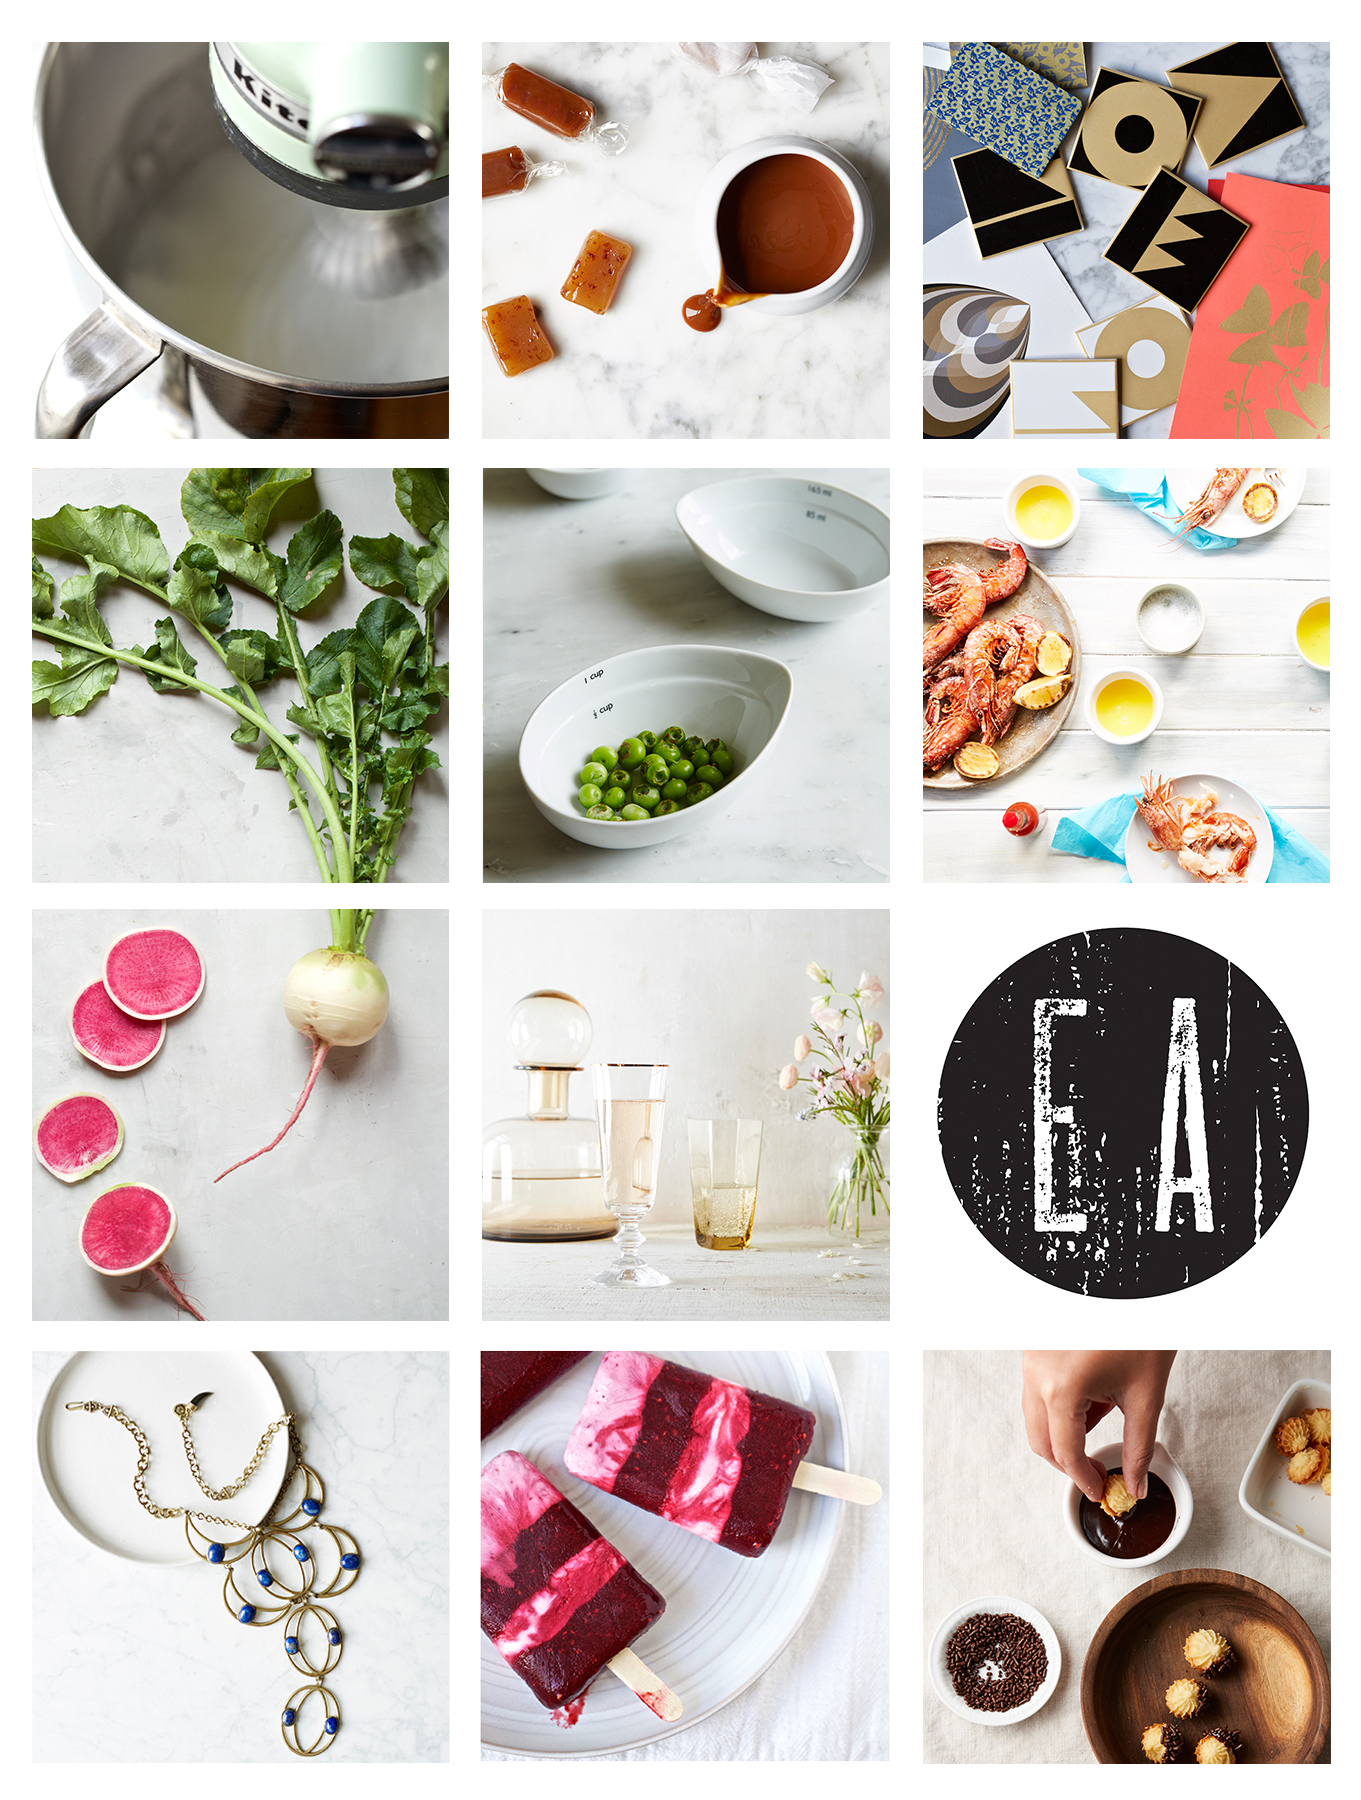 Evi Abeler Product and Food Photographer